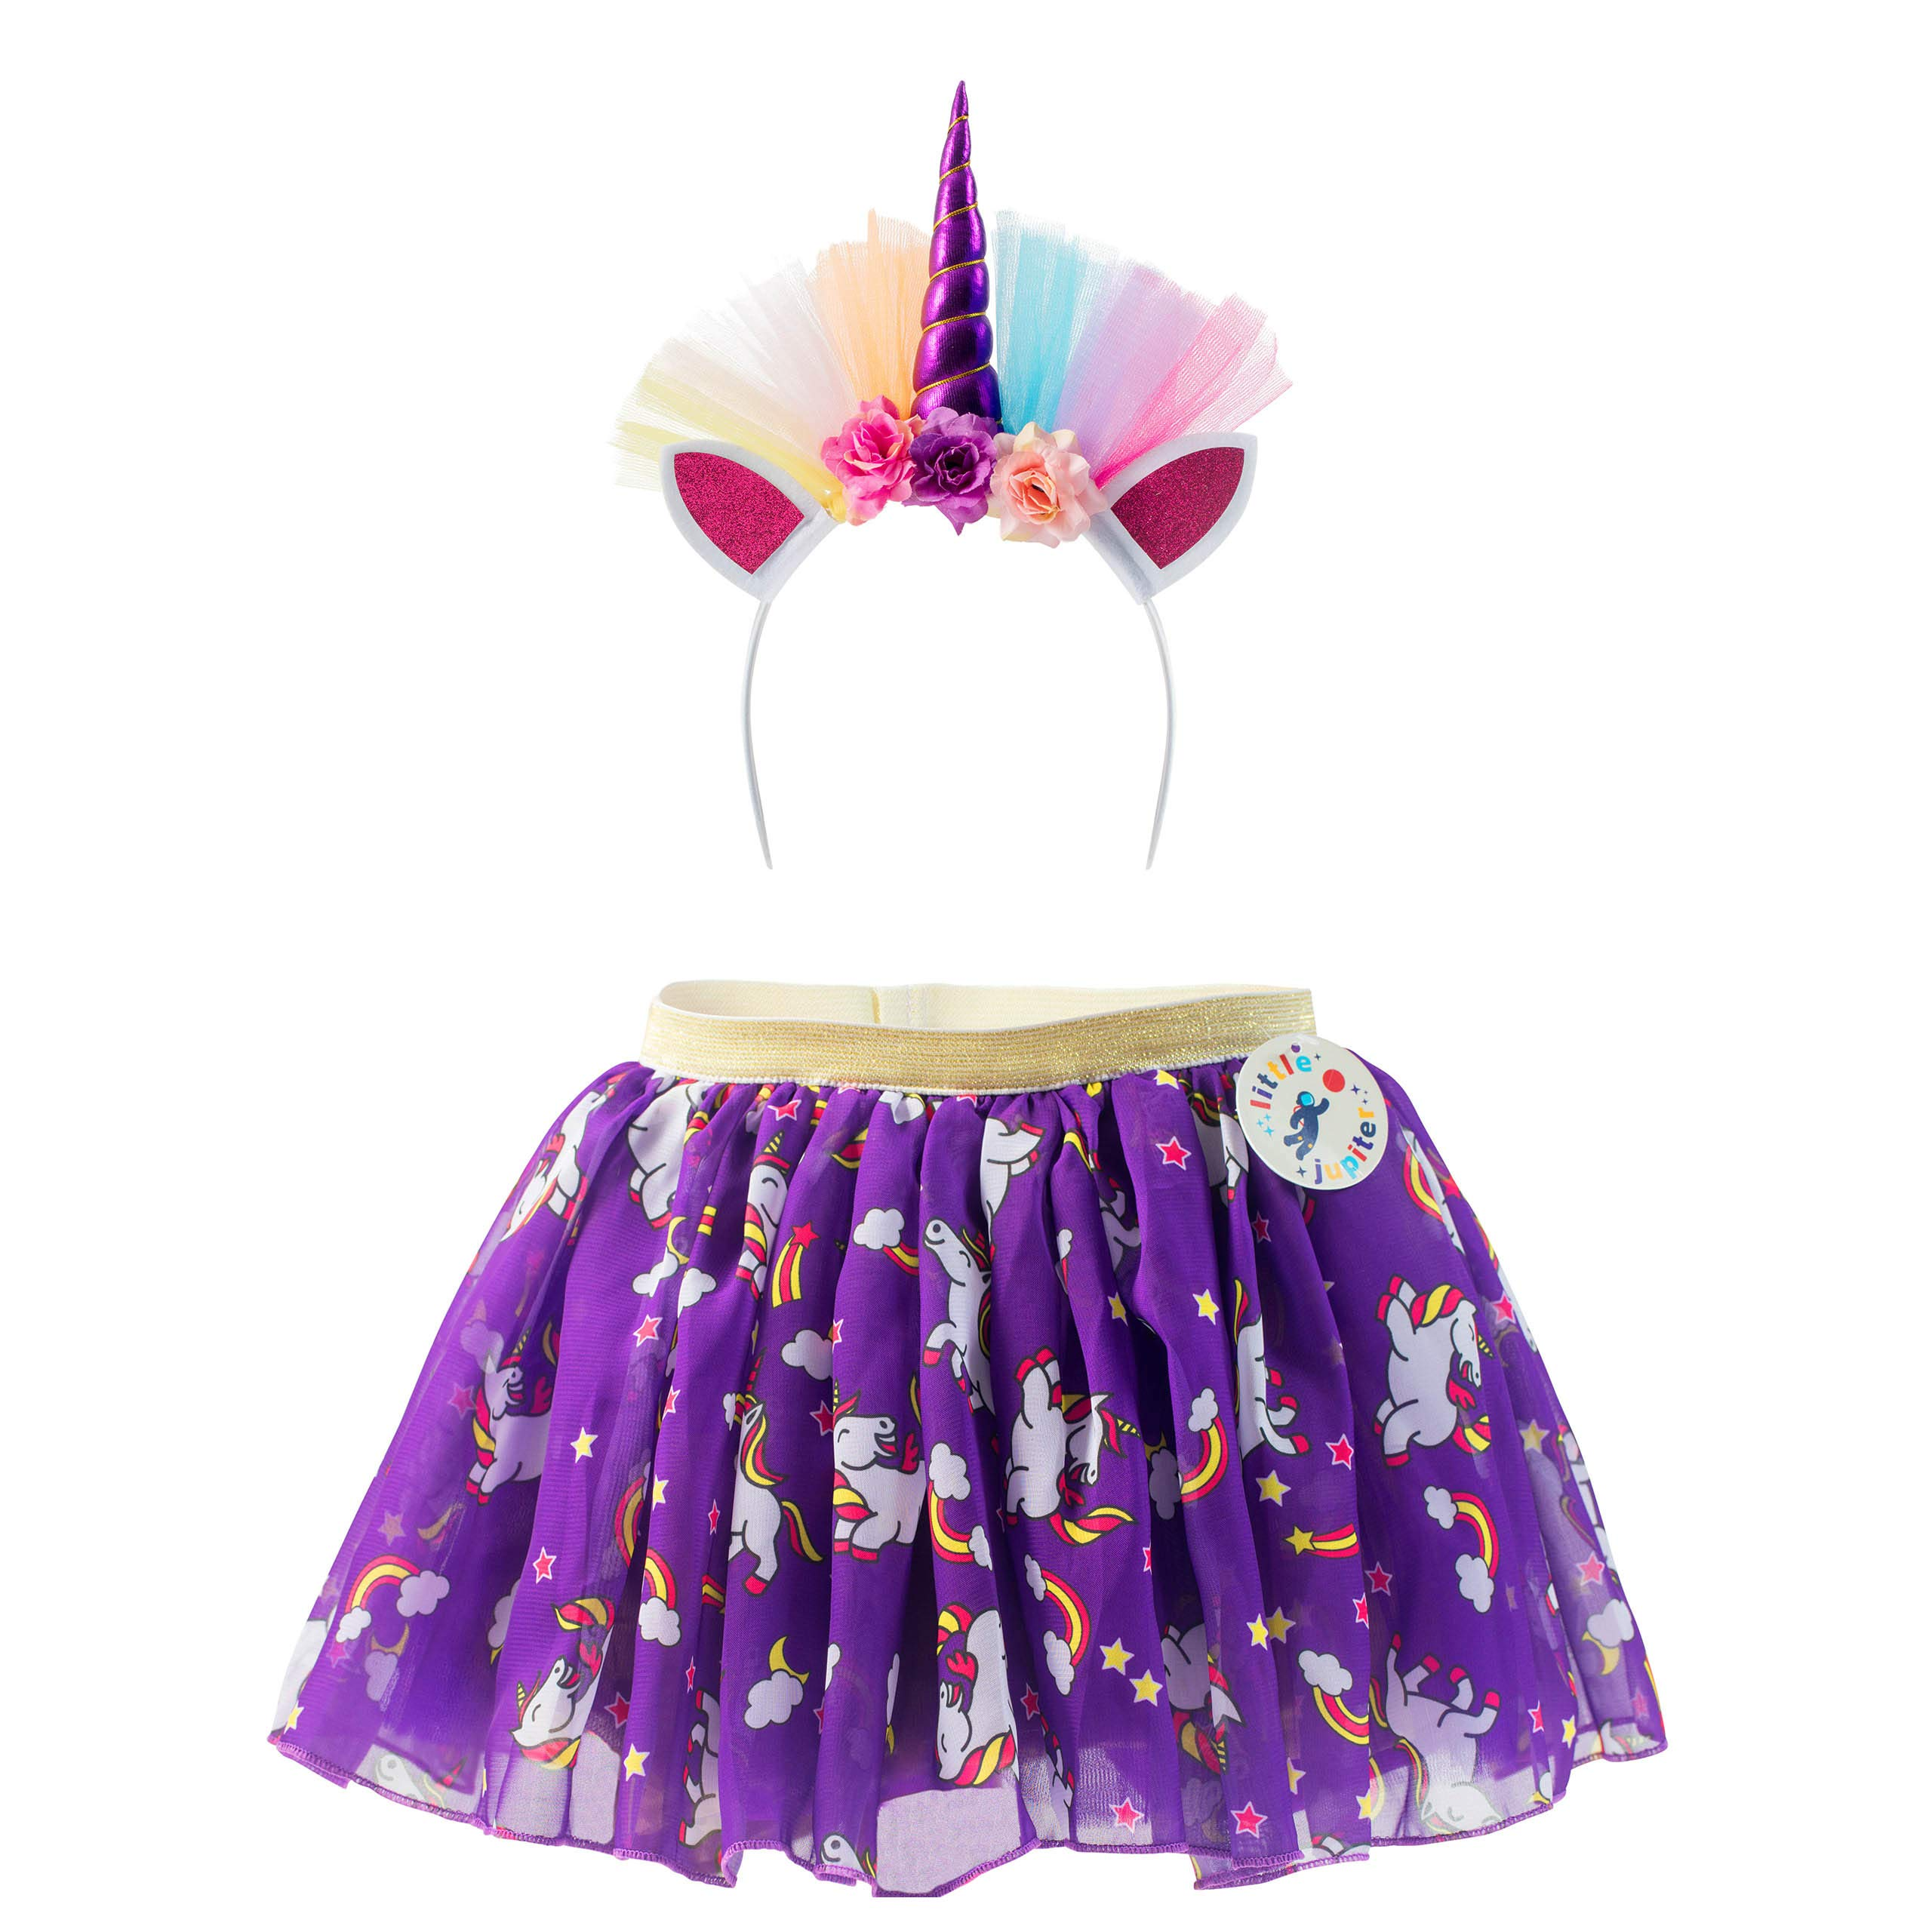 Unicorn Dress & Hairband Dress Up Set For Girls Ages 2 - 3 - 4 - 5 - 6 - 7 & 8